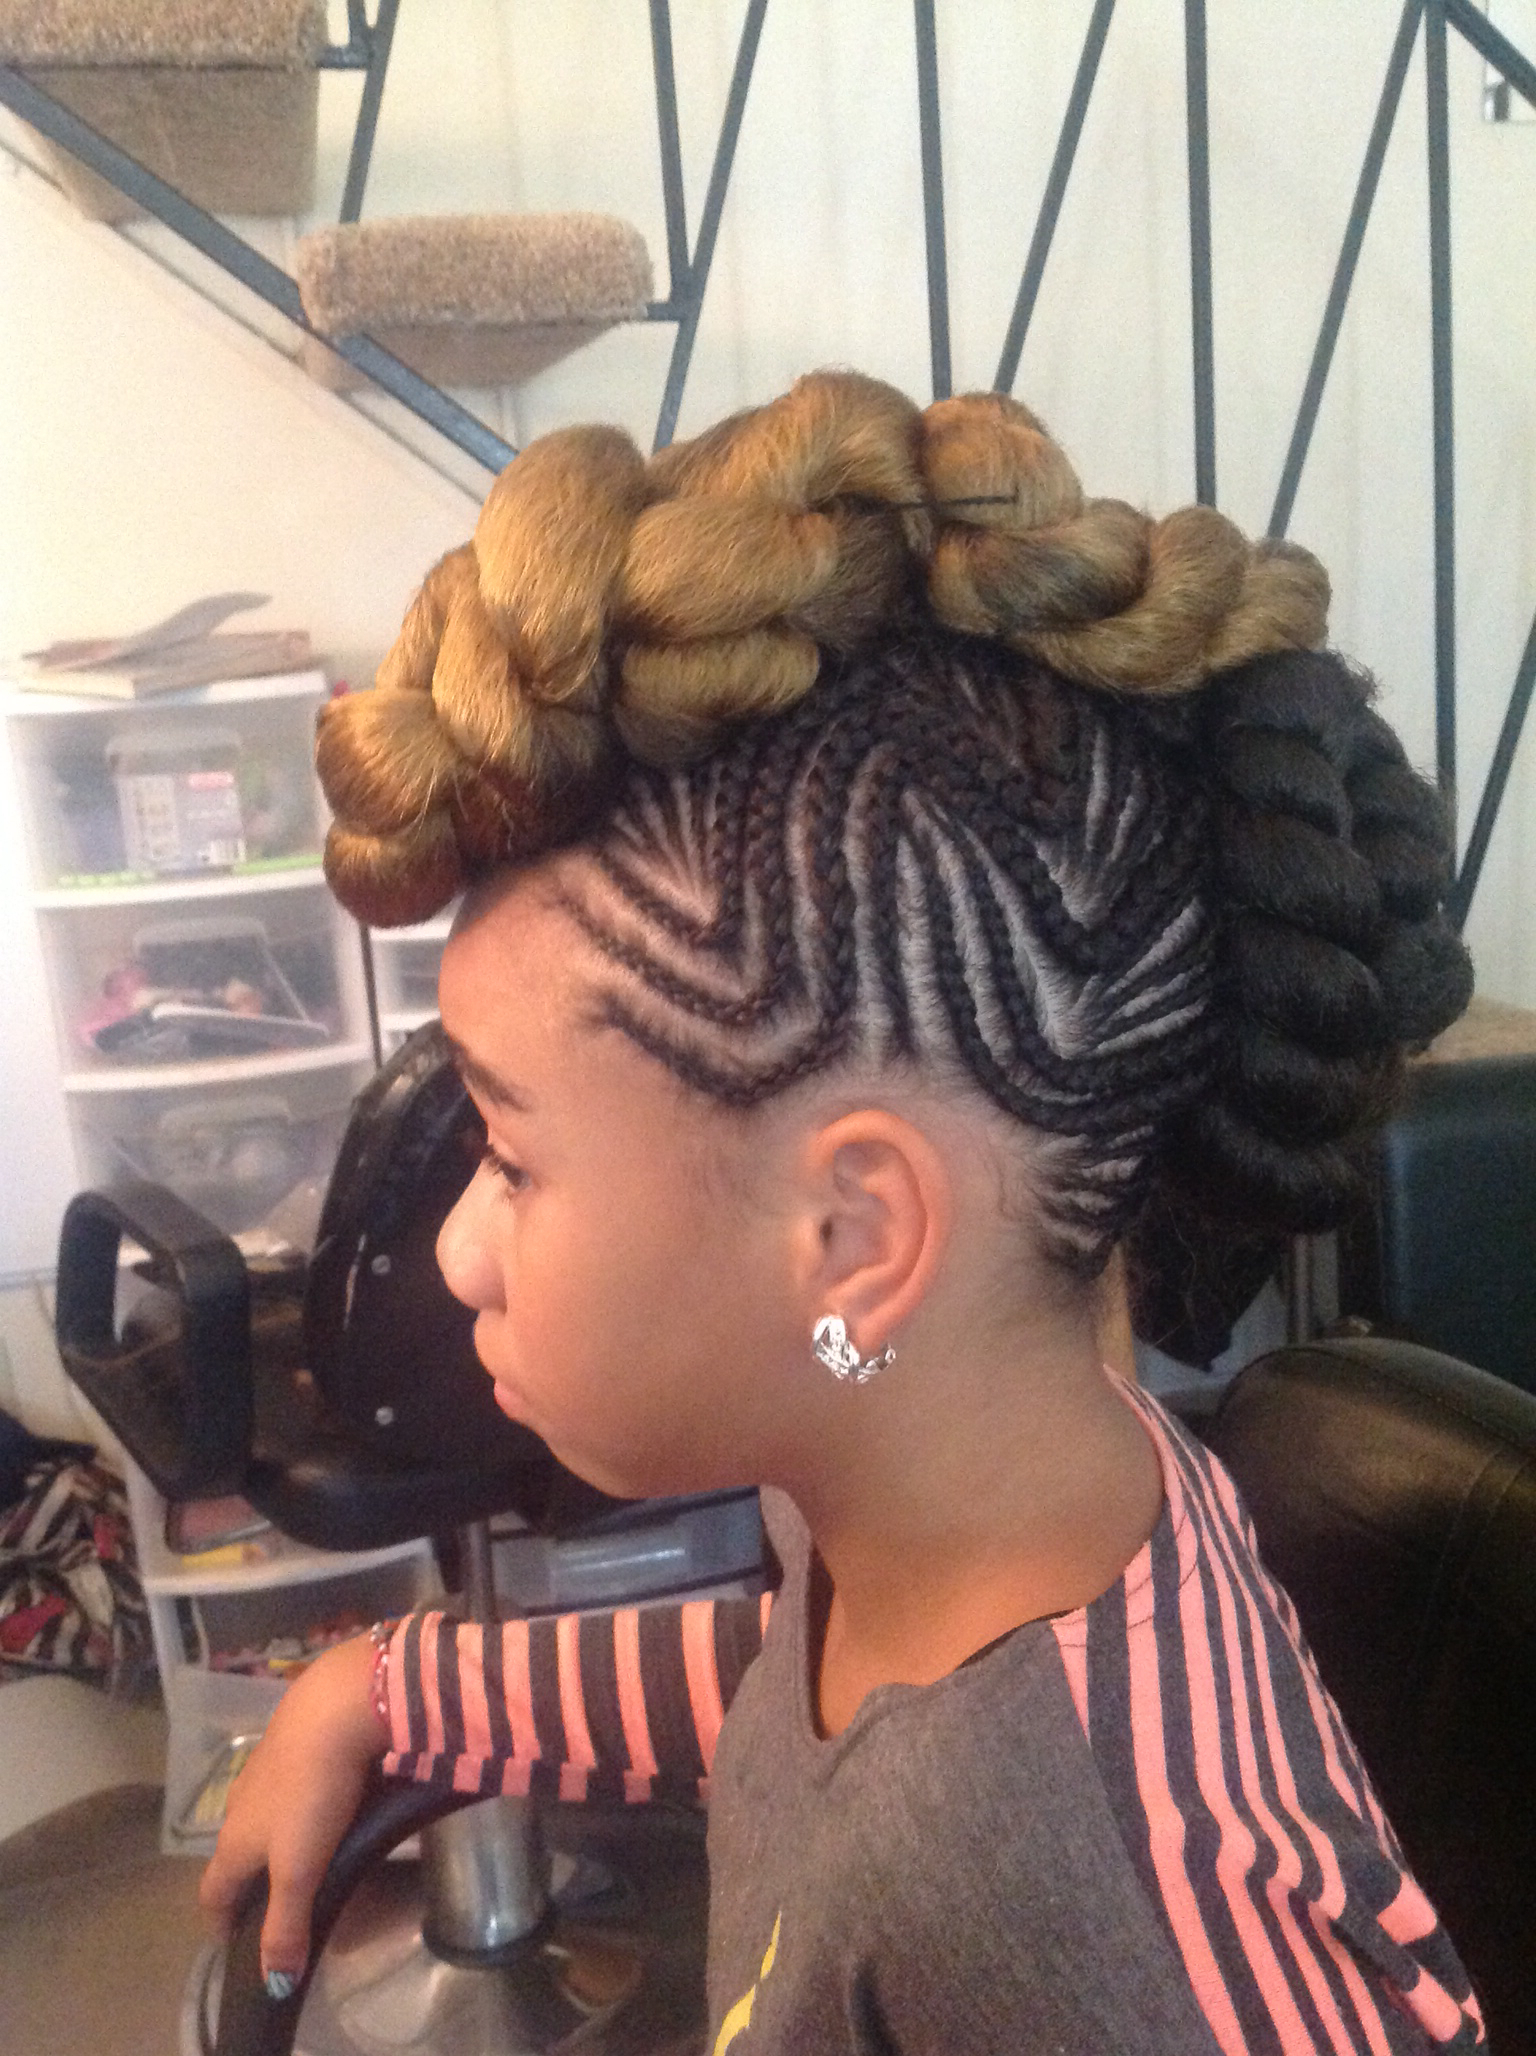 15 Foremost Braided Mohawk Hairstyles – Mohawk With Braids Intended For 2019 Curly Mohawk Updo Hairstyles (Gallery 16 of 20)